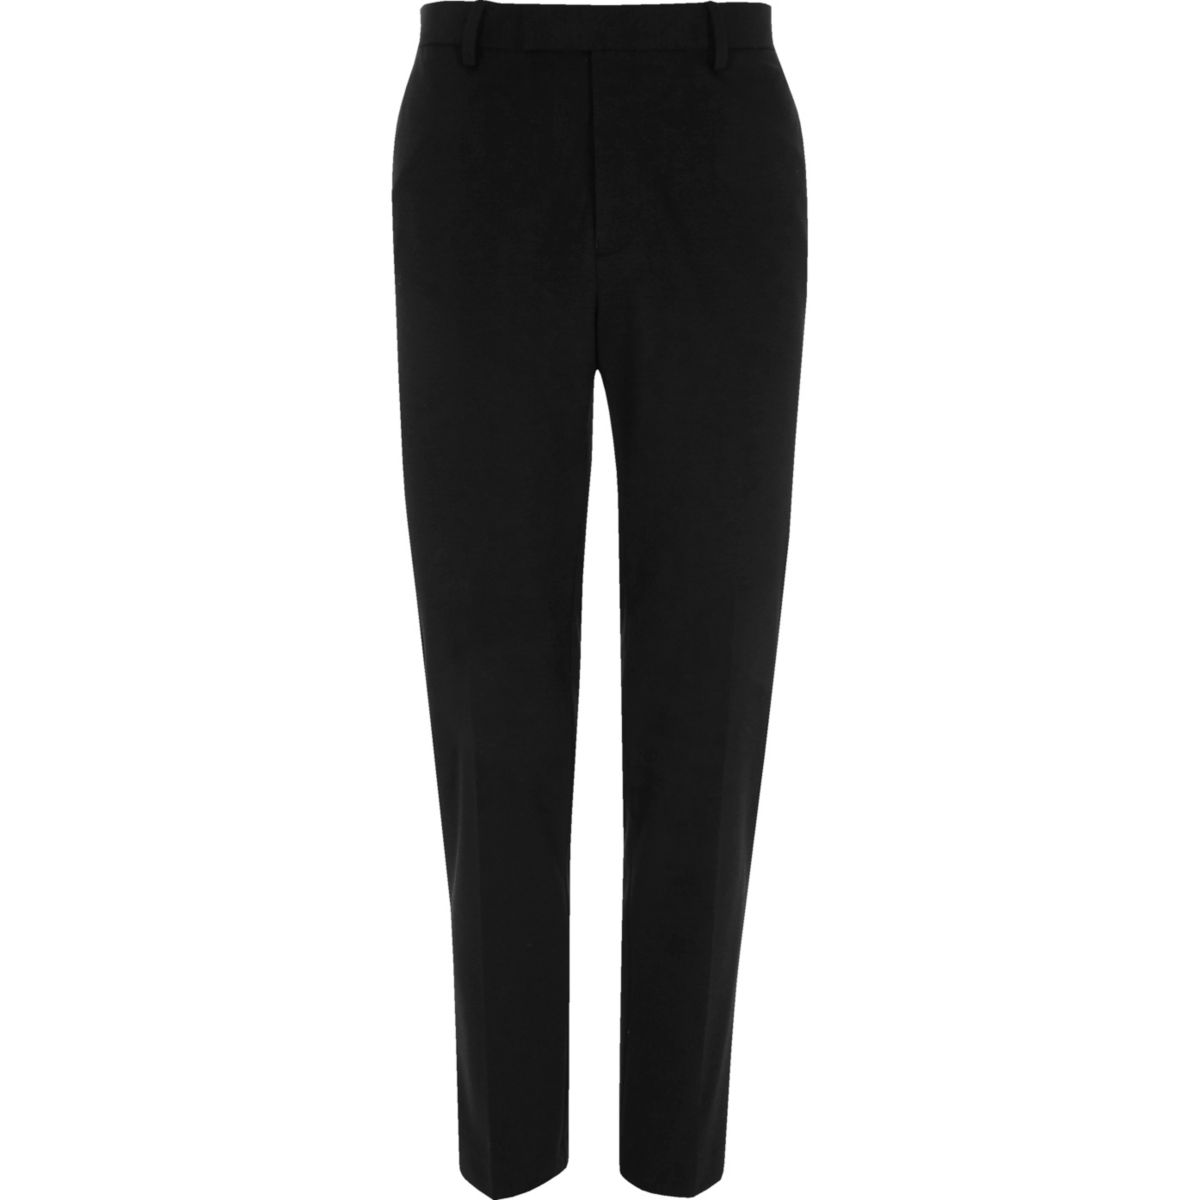 Black jersey skinny fit trousers